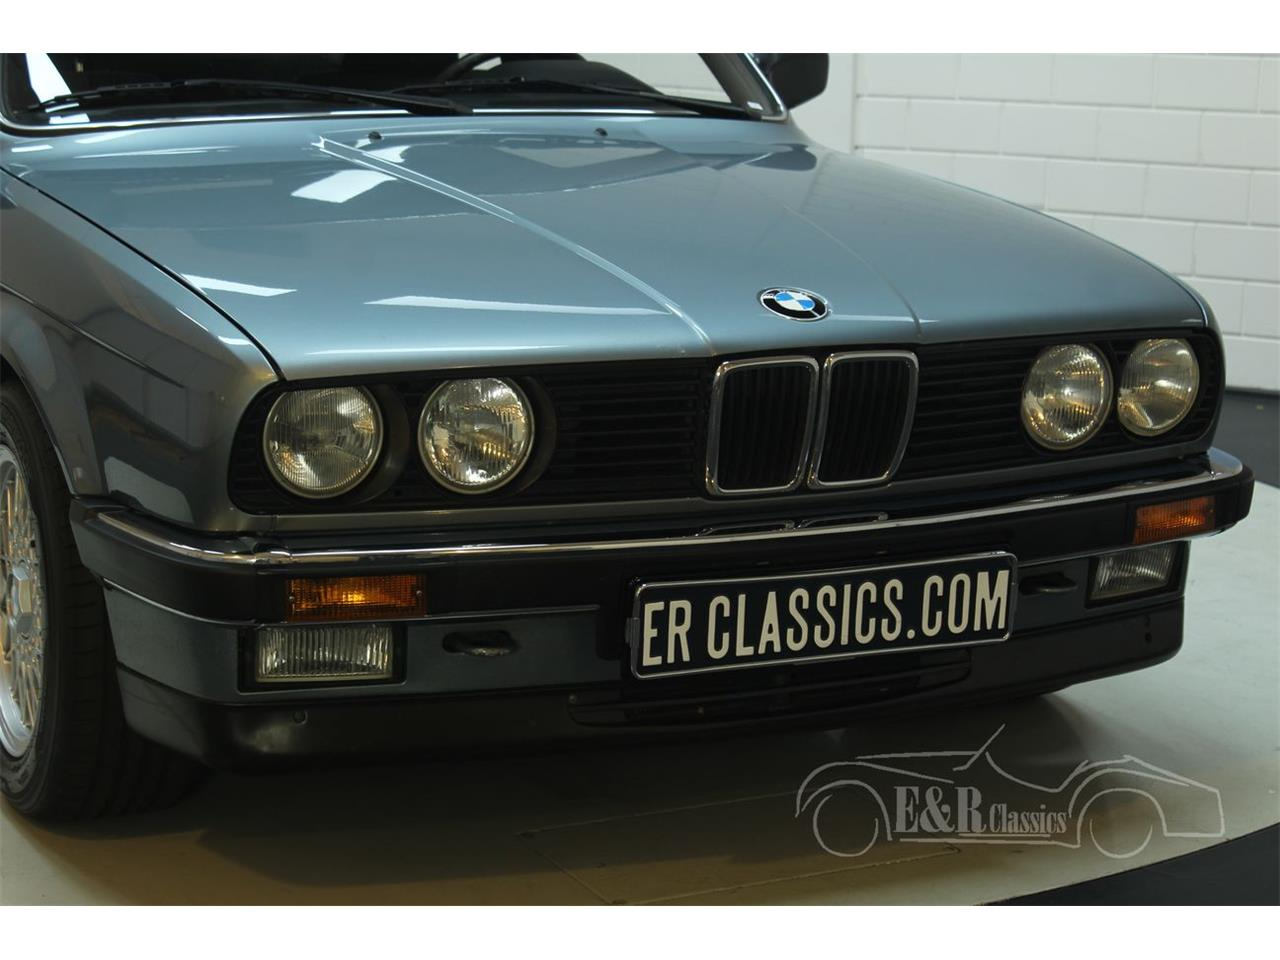 Large Picture of '86 BMW 325i located in - Keine Angabe - - $33,850.00 Offered by E & R Classics - PGT1